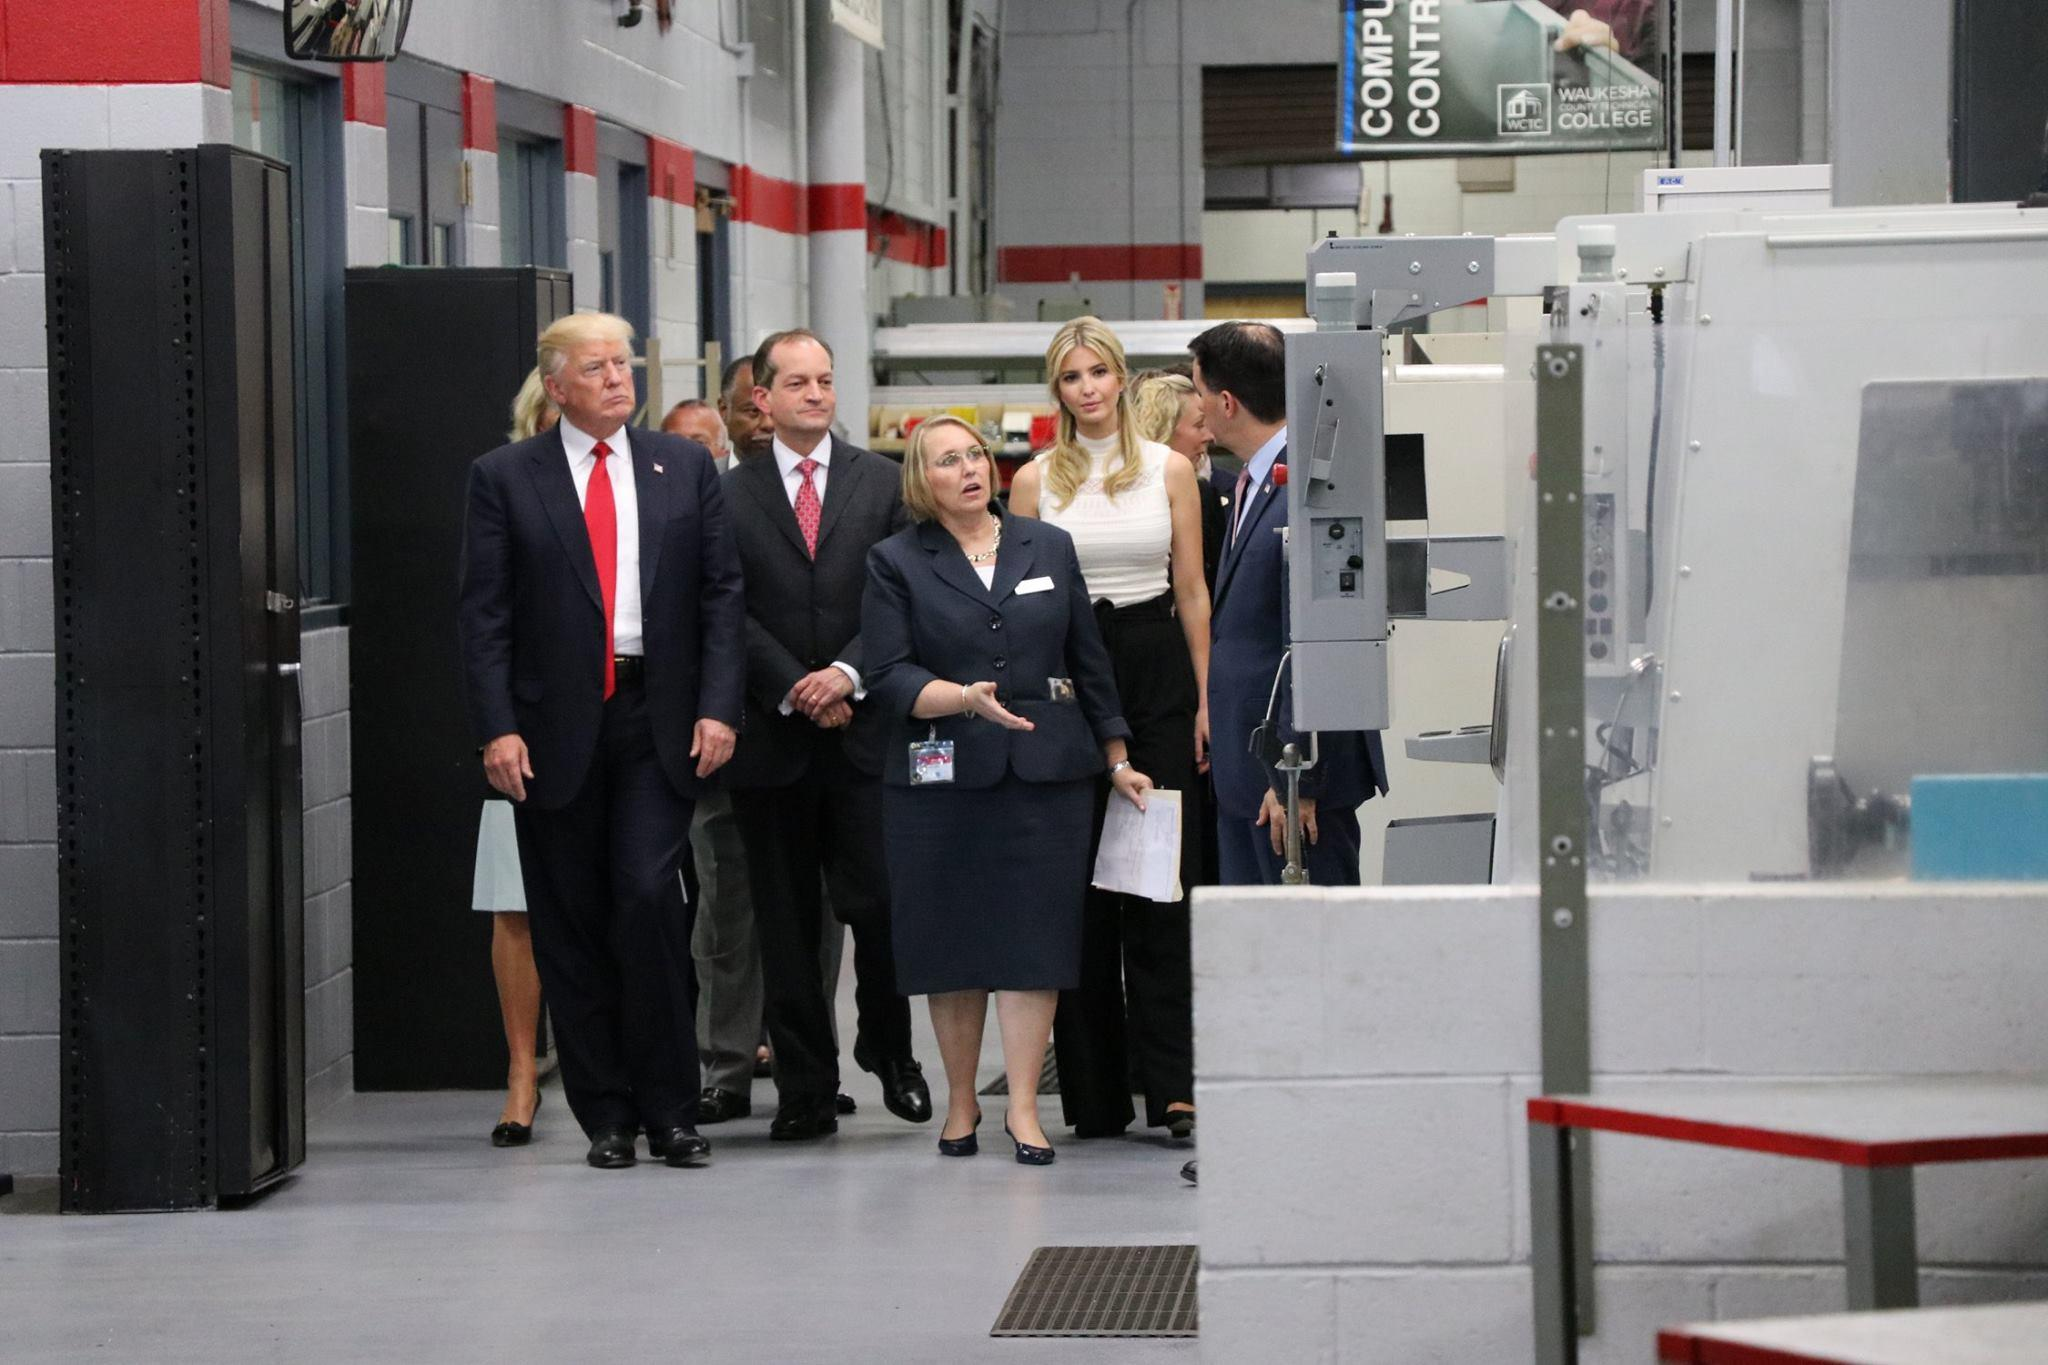 Trump making case for apprenticeships to fill jobs gap